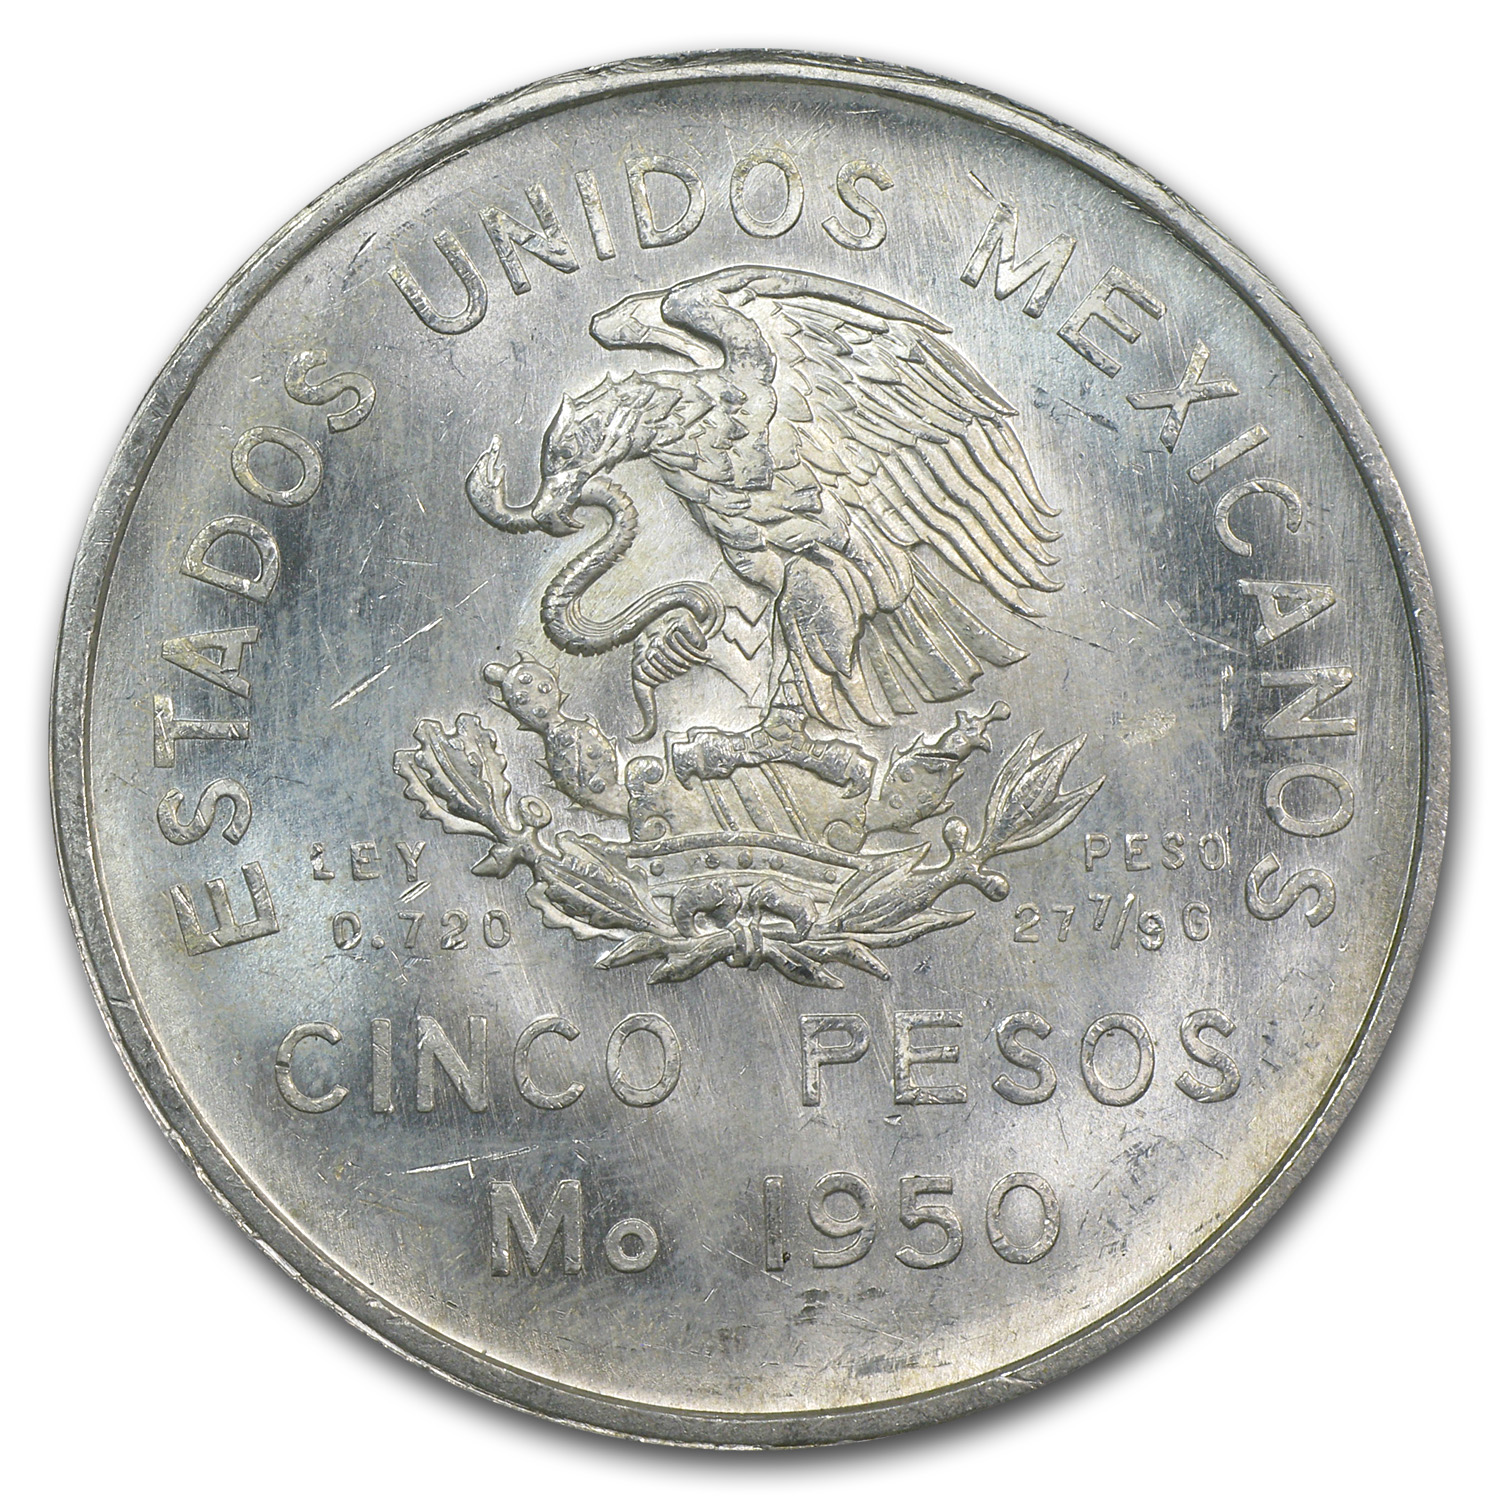 1950 Silver Mexican 5 Pesos Southern Railroad MS-65 PCGS